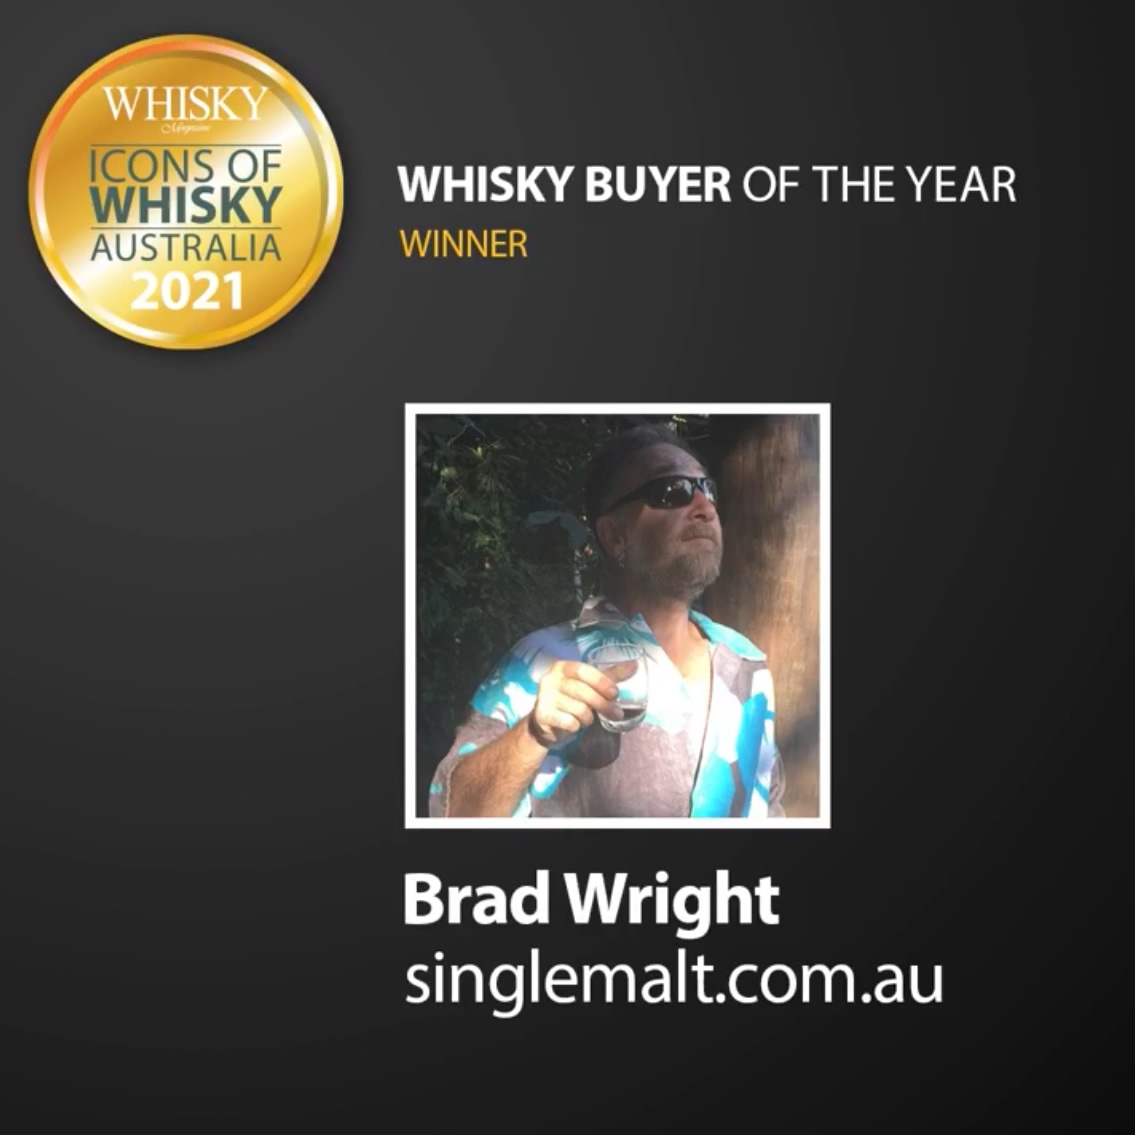 Icons of Whisky Awards Australian Whisky Buyer of the Year